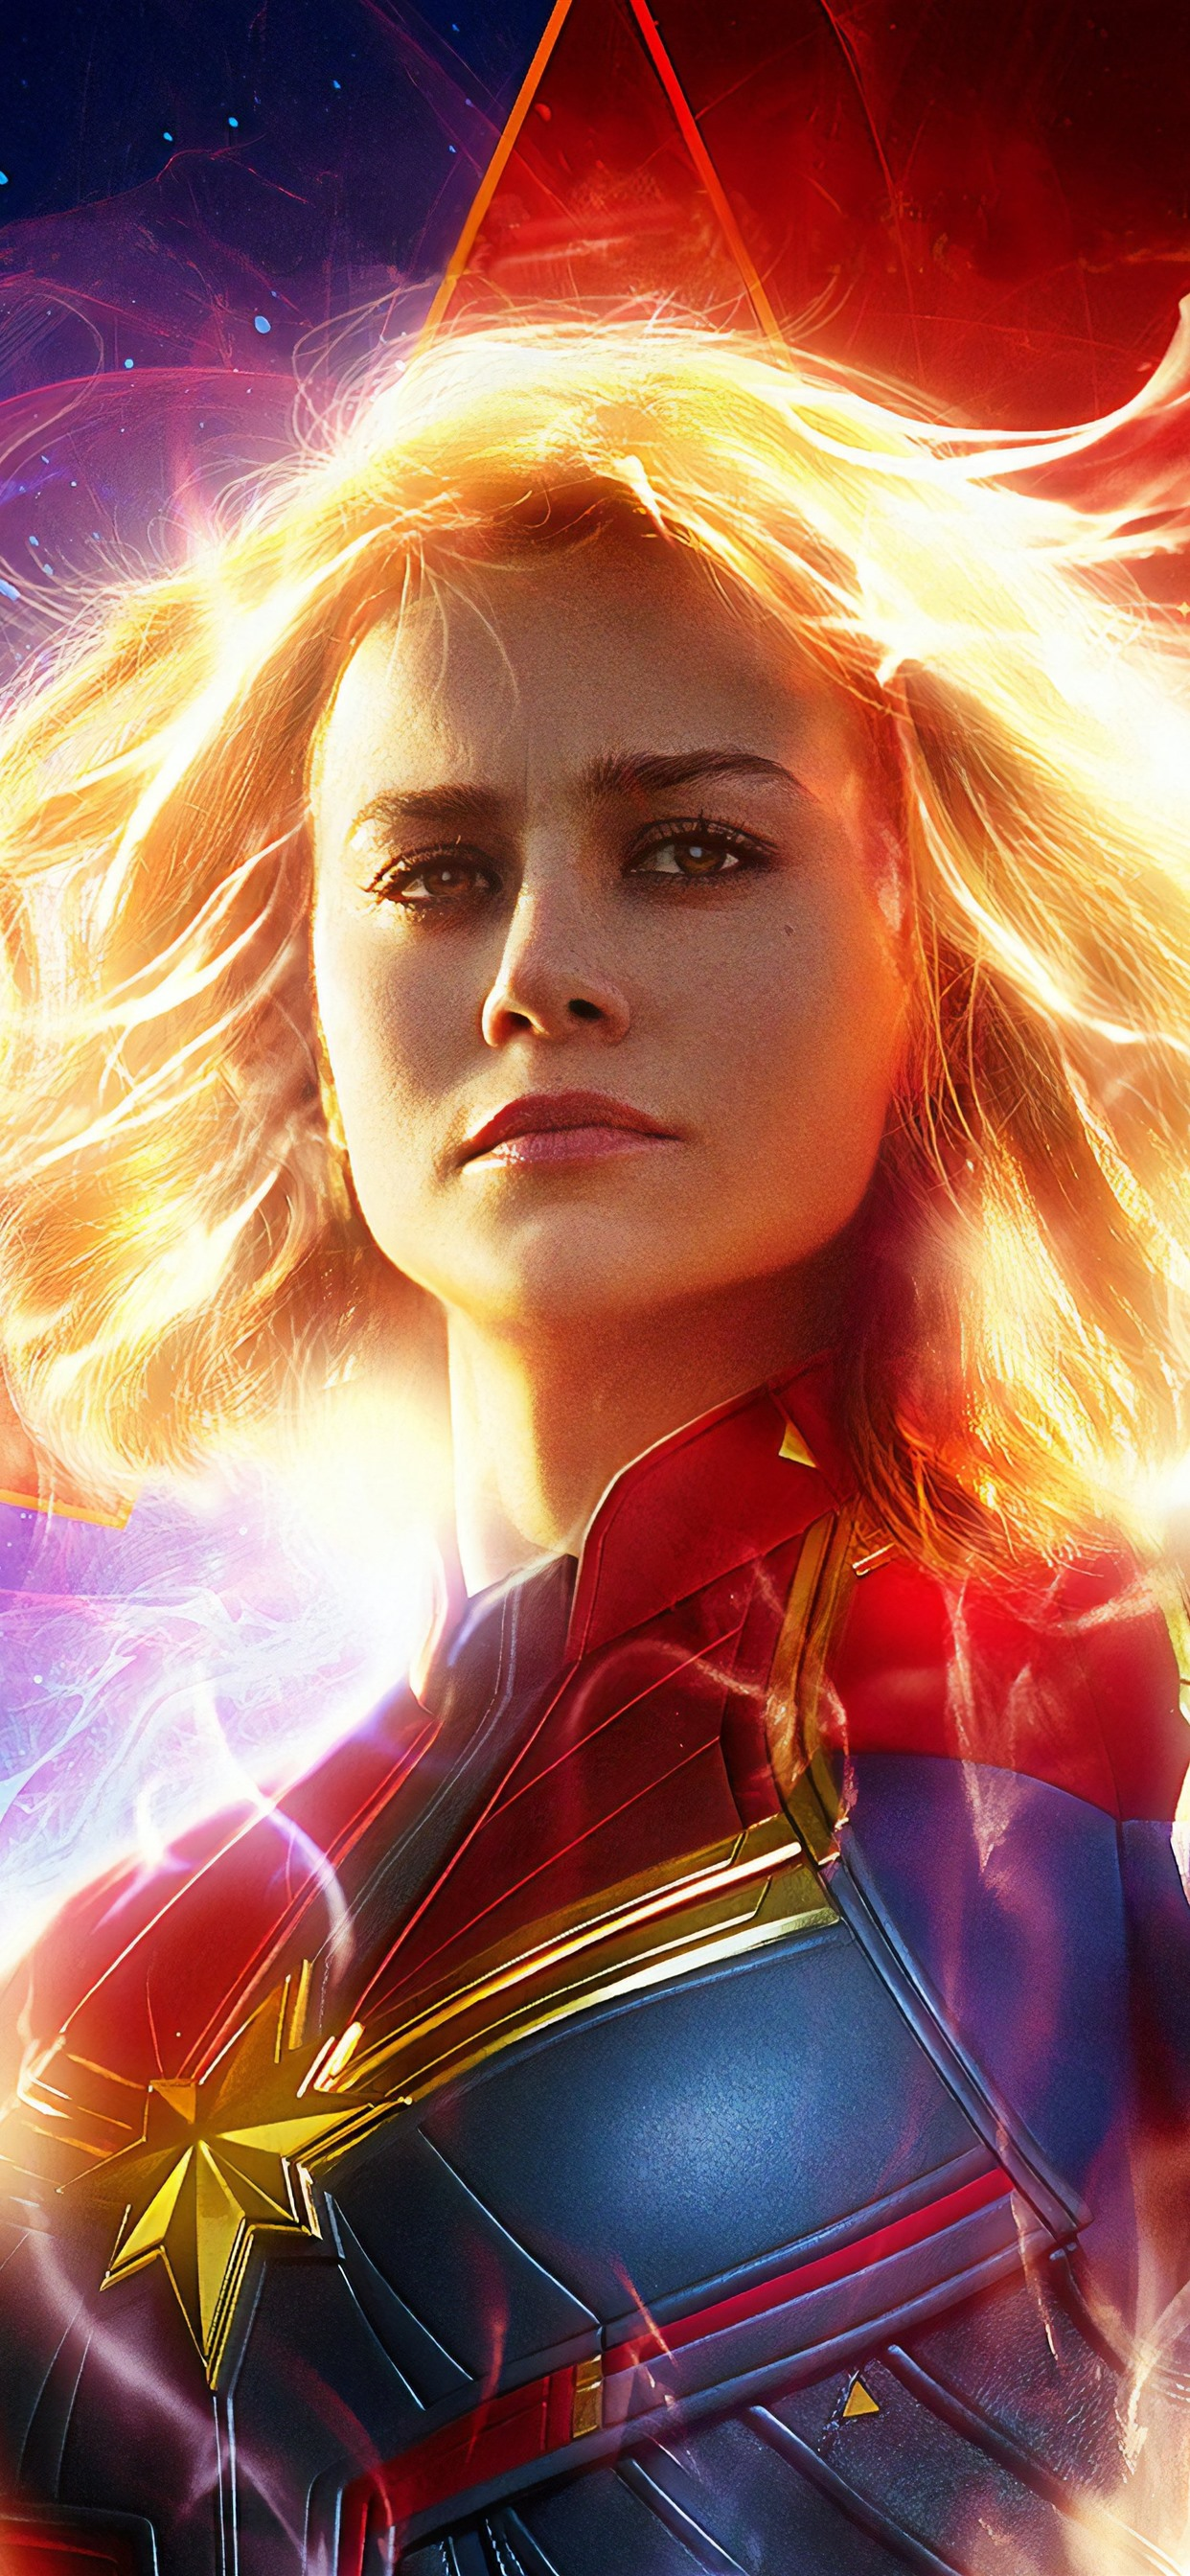 Captain Marvel 2019 1242x2688 Iphone 11 Pro Xs Max Wallpaper Background Picture Image